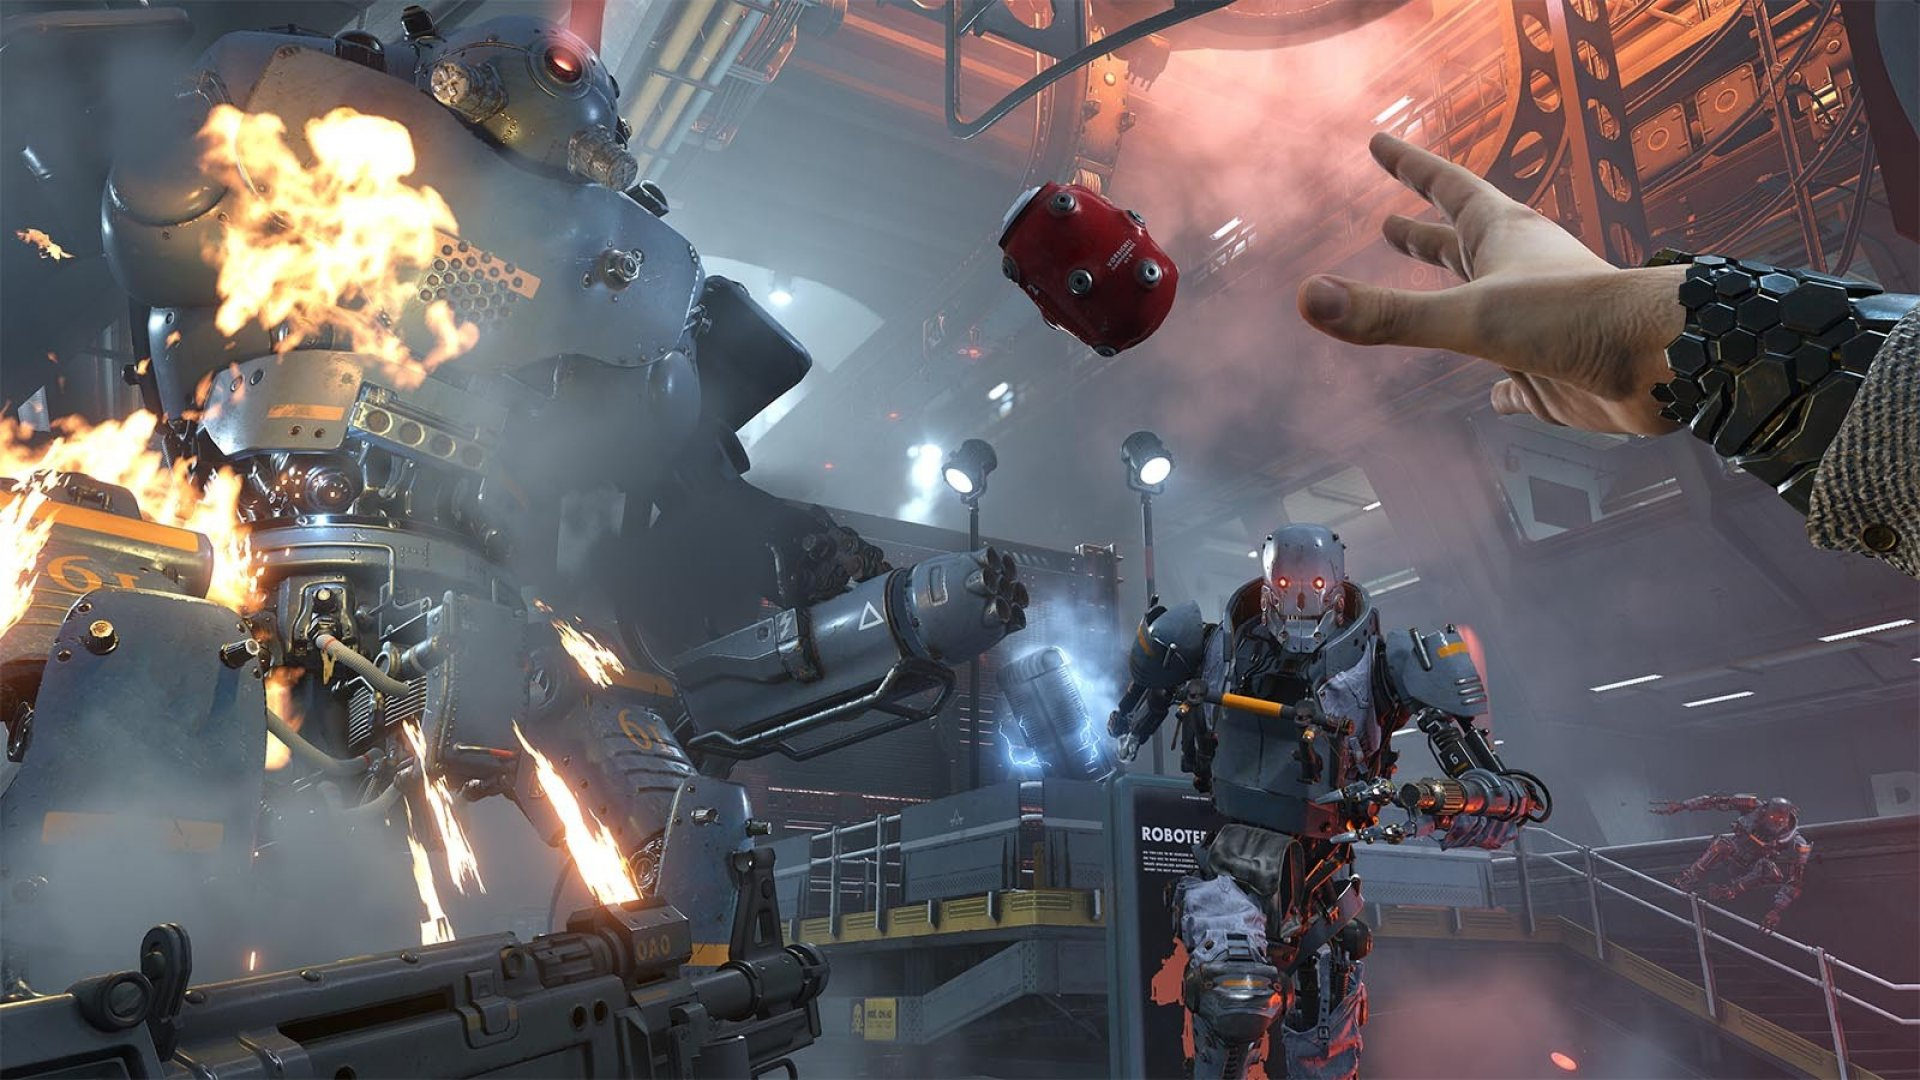 Wolfenstein 2: The New Colossus - The Freedom Chronicles